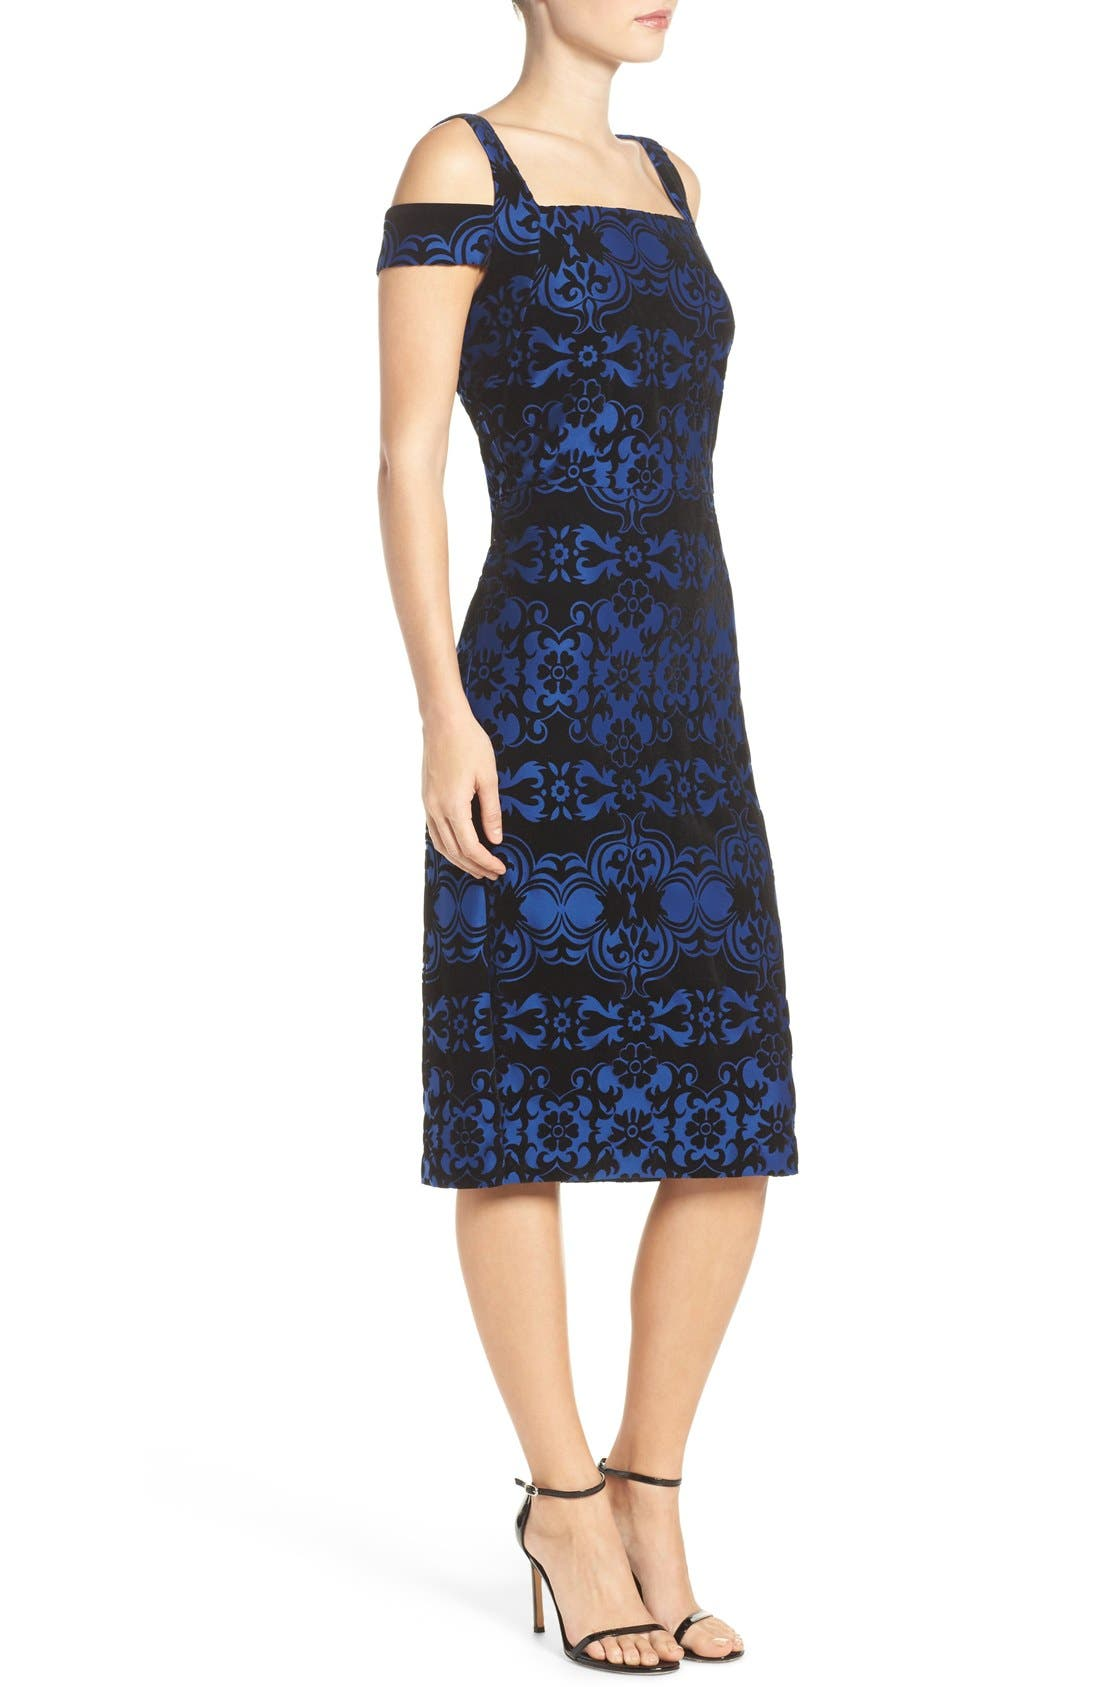 Flocked Midi Dress,                             Alternate thumbnail 3, color,                             Black/ Blue